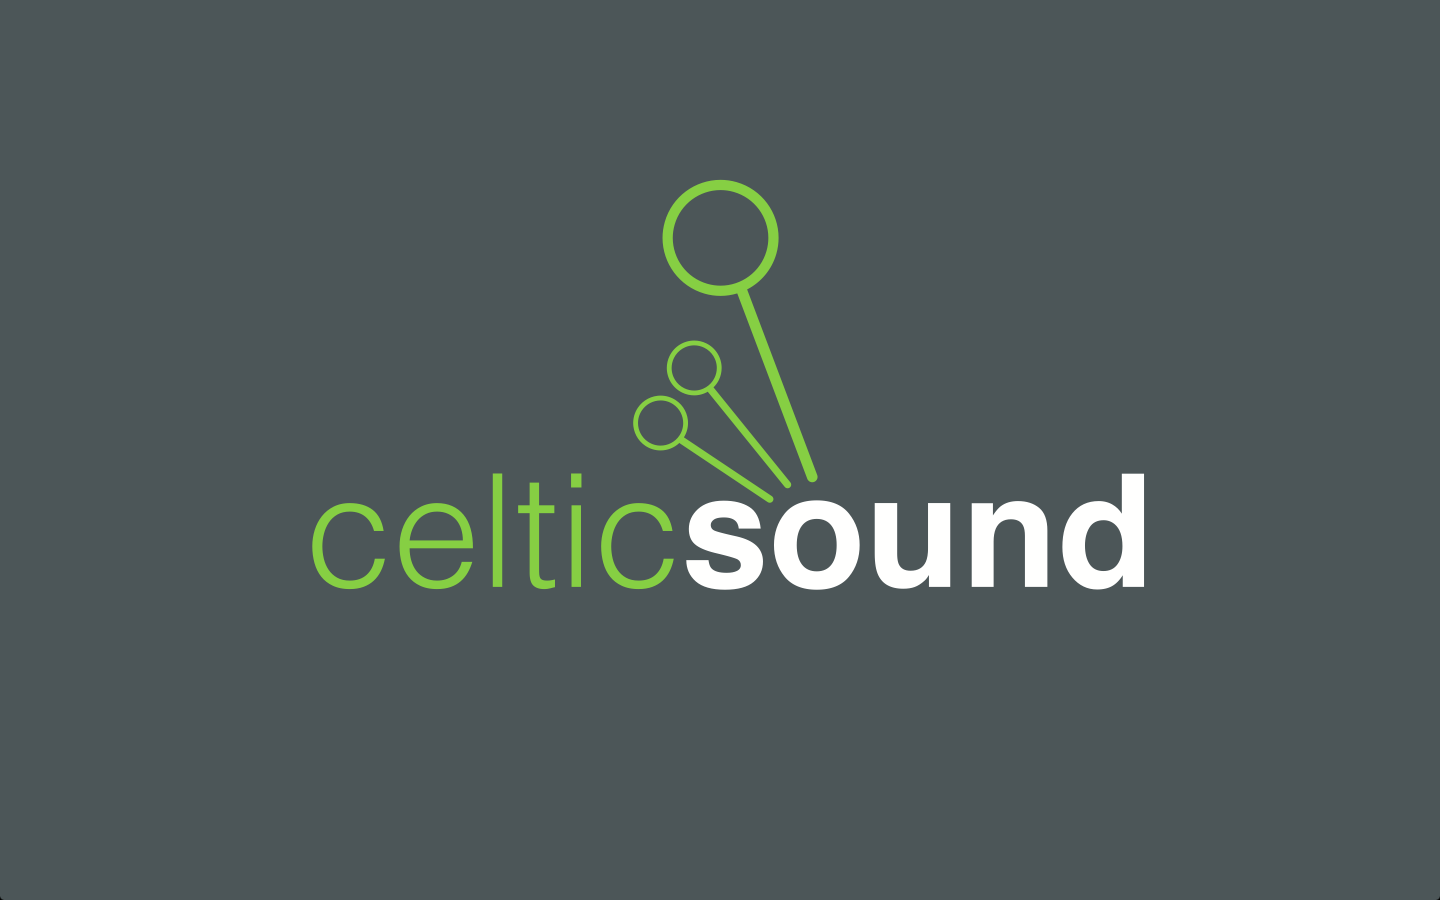 CELTIC SOUND Gris